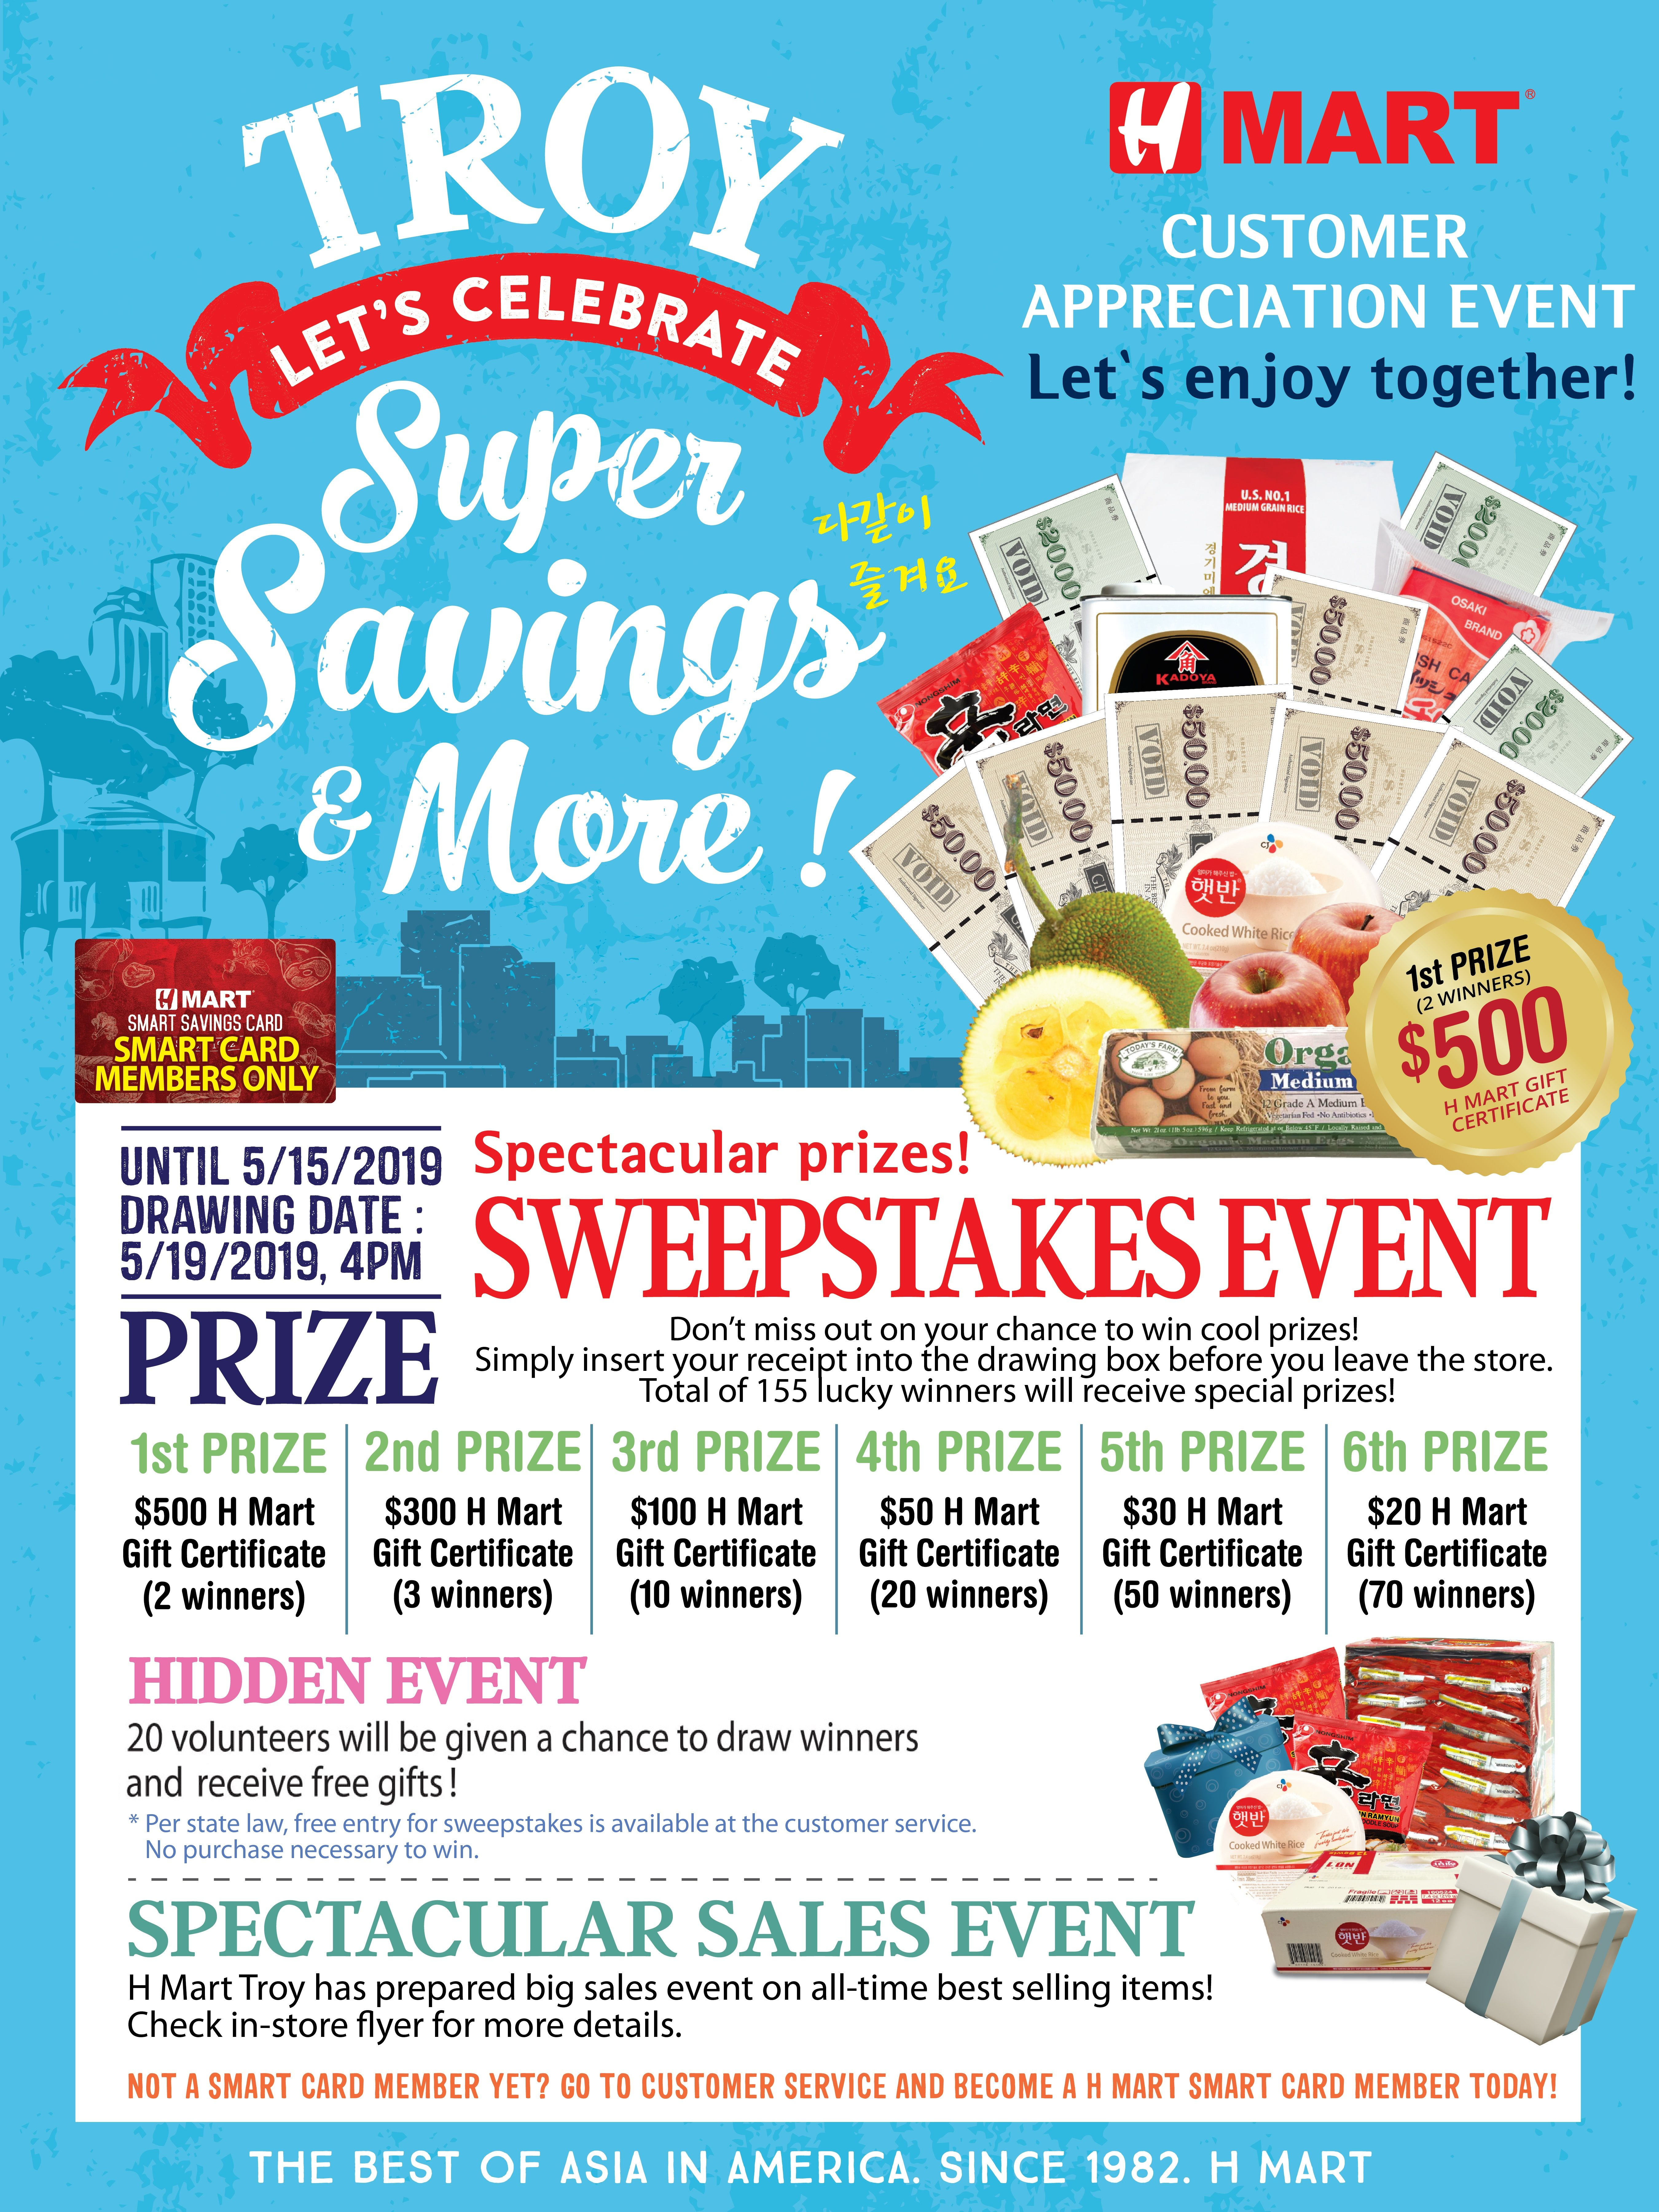 supermarket customer sweepstakes raffle draw h mart tory sweepstakes hidden event 5405